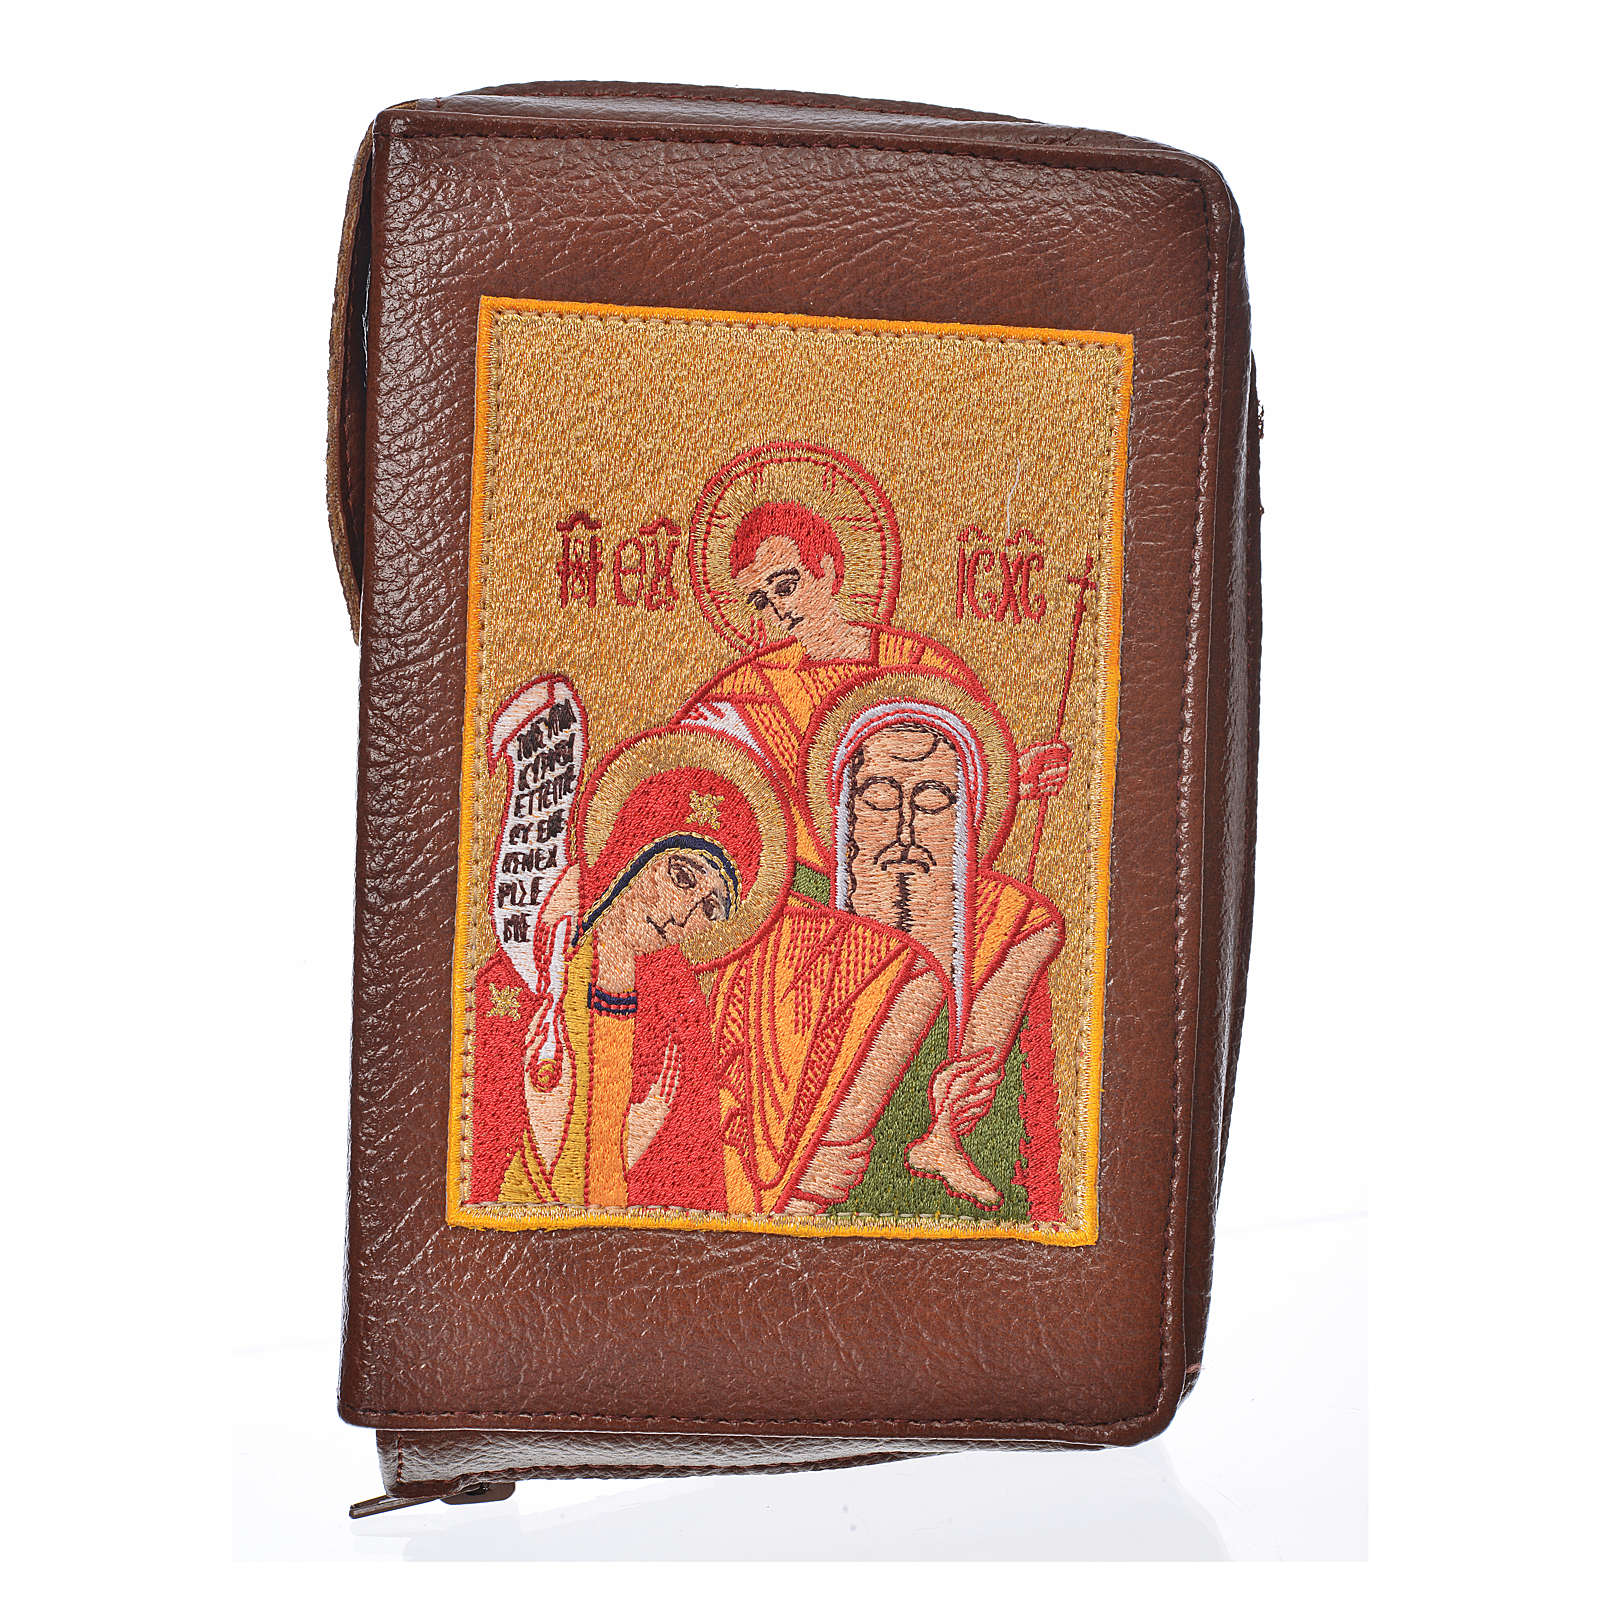 Liturgy of the Hours cover bonded leather with Holy Family of Kiko 4